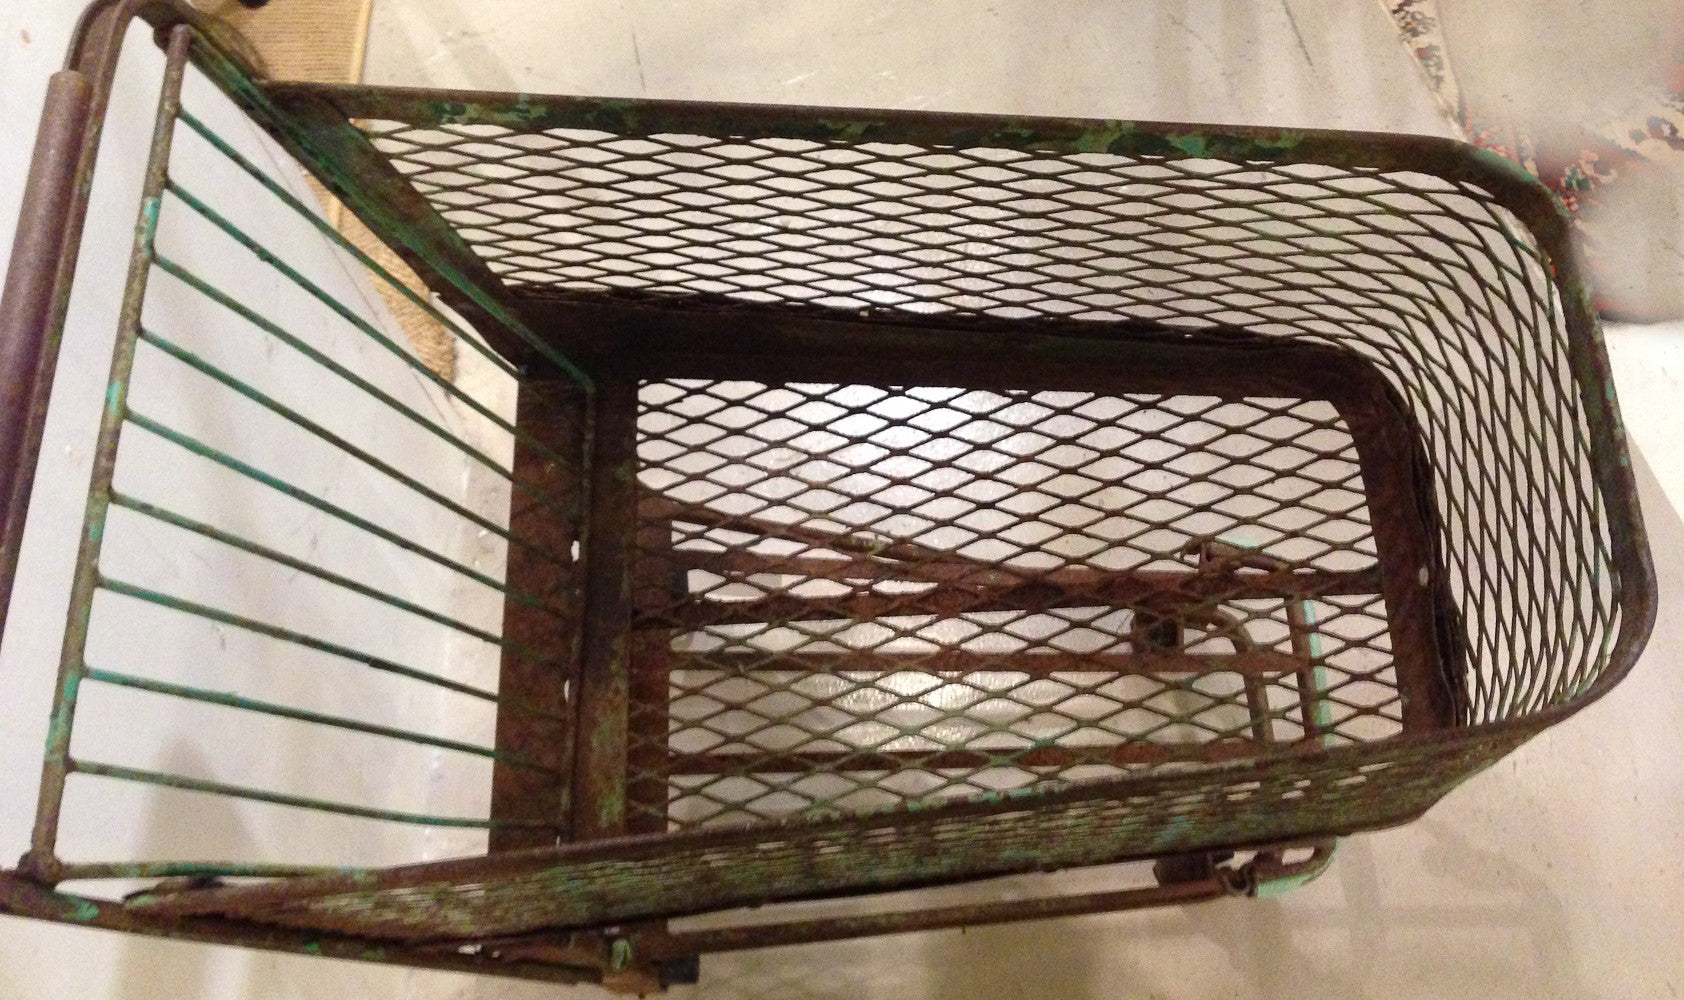 Vintage 1930's Original American Grocery Store, Shopping Cart